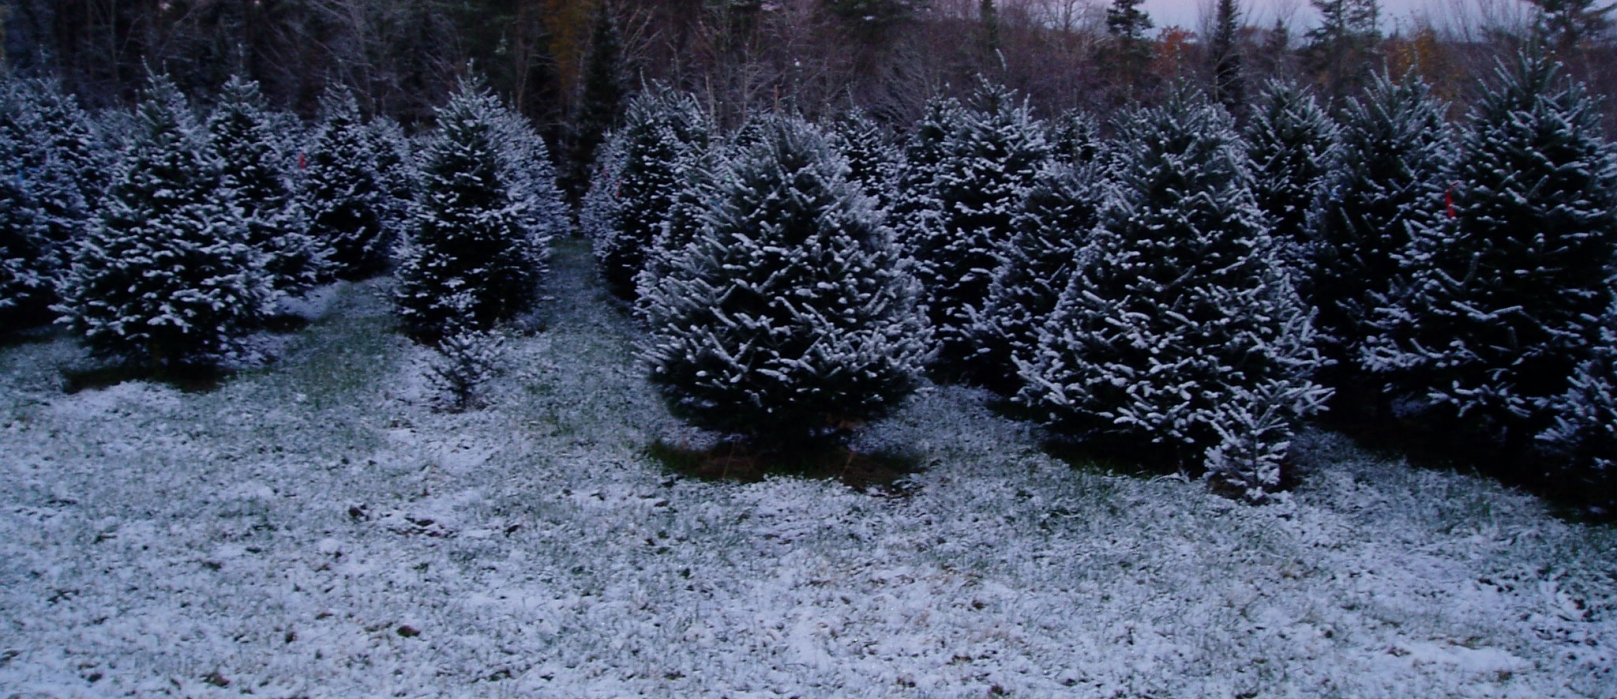 Christmas Trees in rows stand lightly covered in snow.